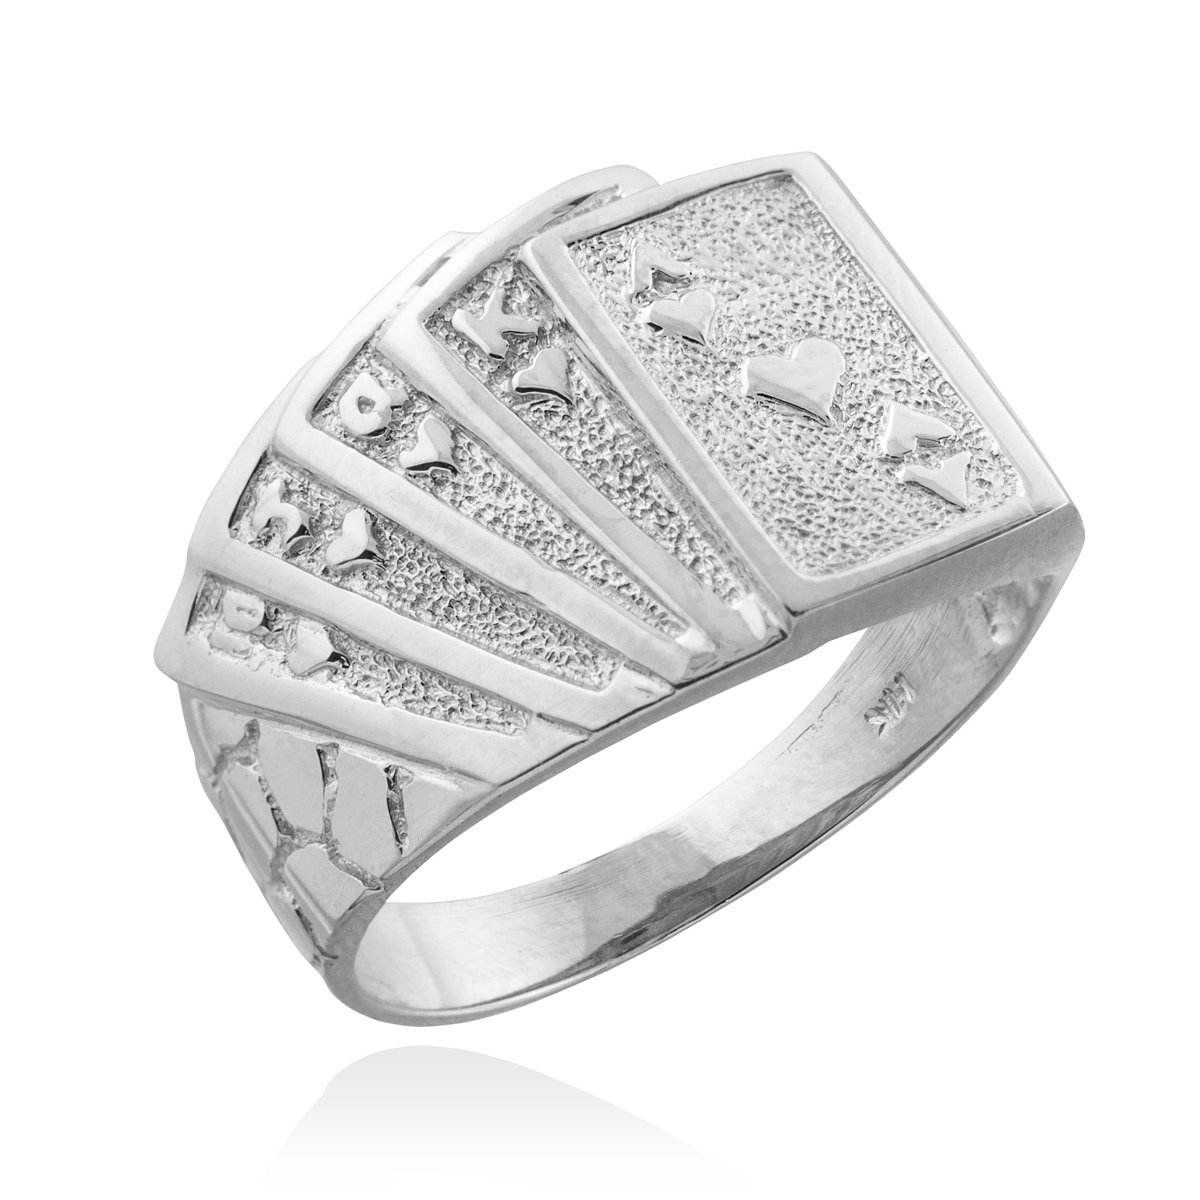 Men's 925 Sterling Silver Lucky Nugget Band Royal Flush of Hearts Poker Ring (Size 6.25)